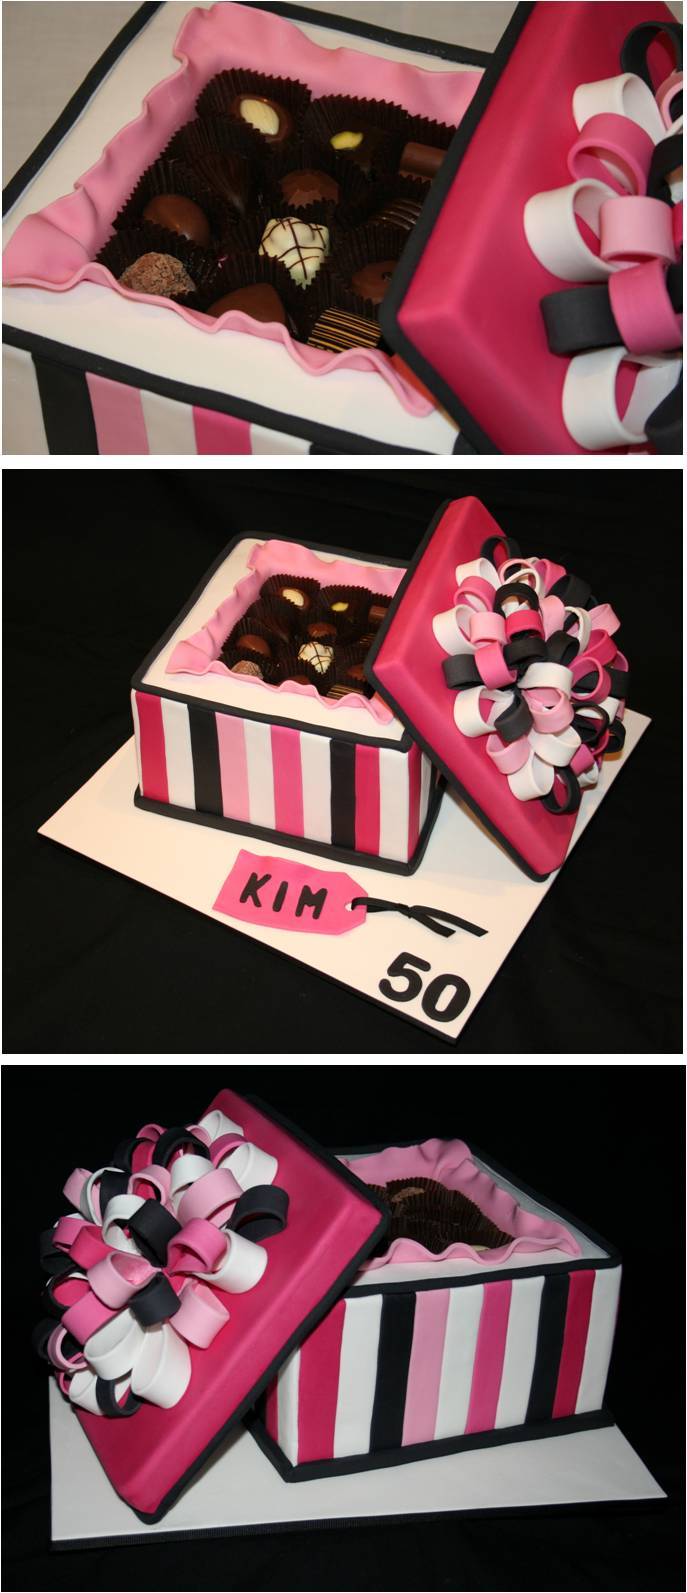 ... Cakes and Parties . . . . .: Chocolate Gift Box - 50th Birthday Cake